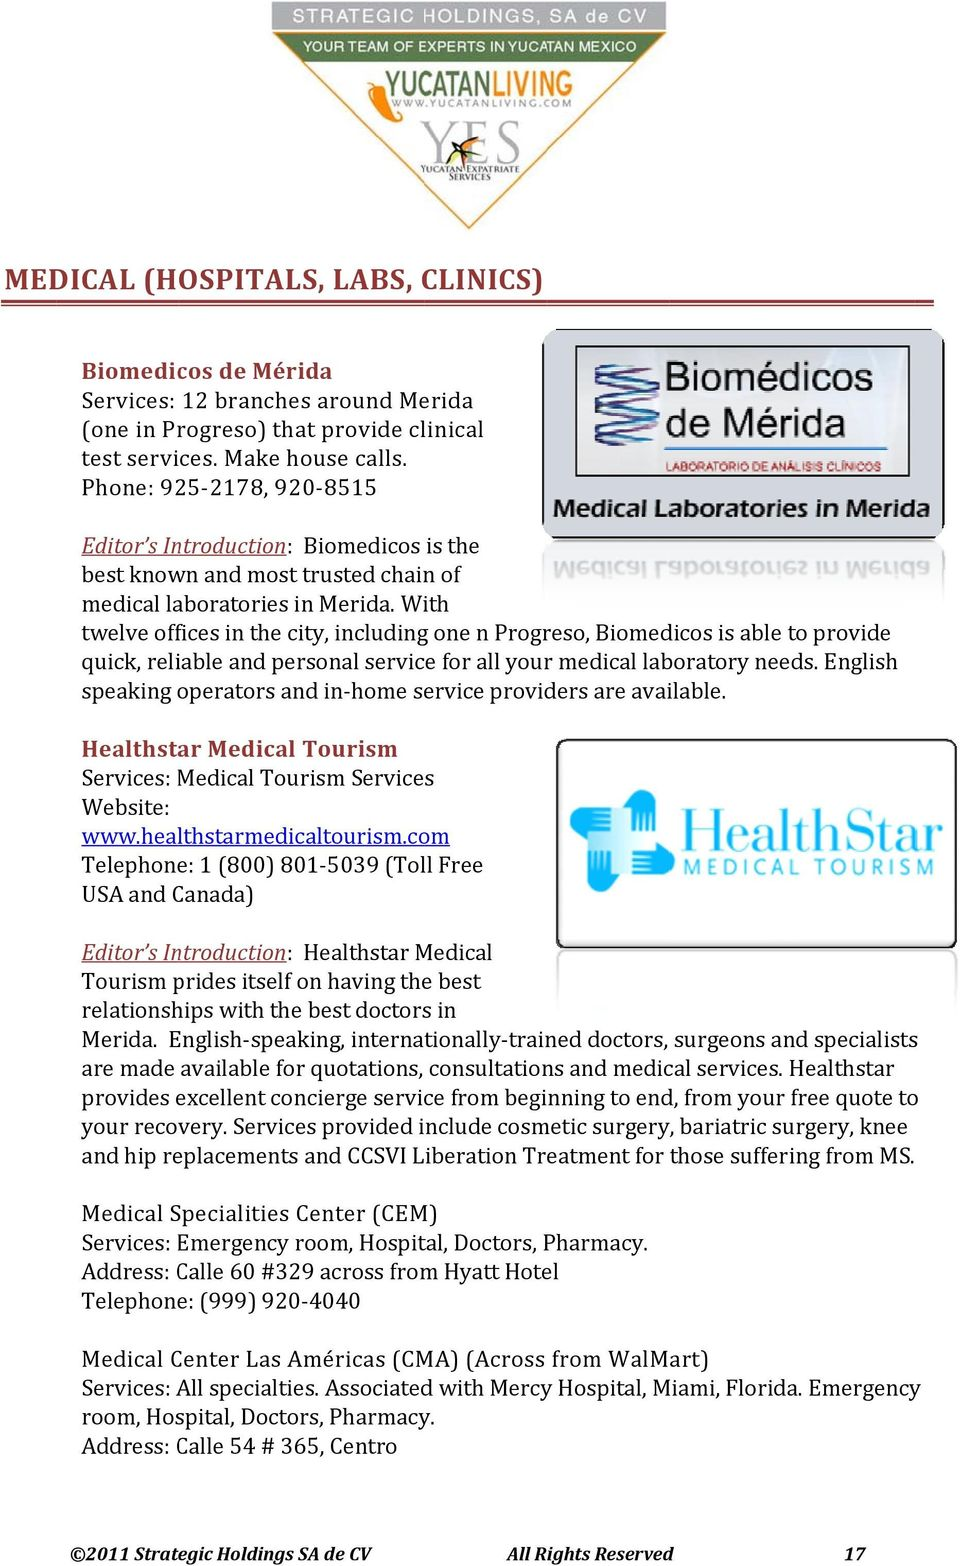 With twelve offices in the city, including one n Progreso, Biomedicos is able to provide quick, reliable and personal service for all your medical laboratory needs.